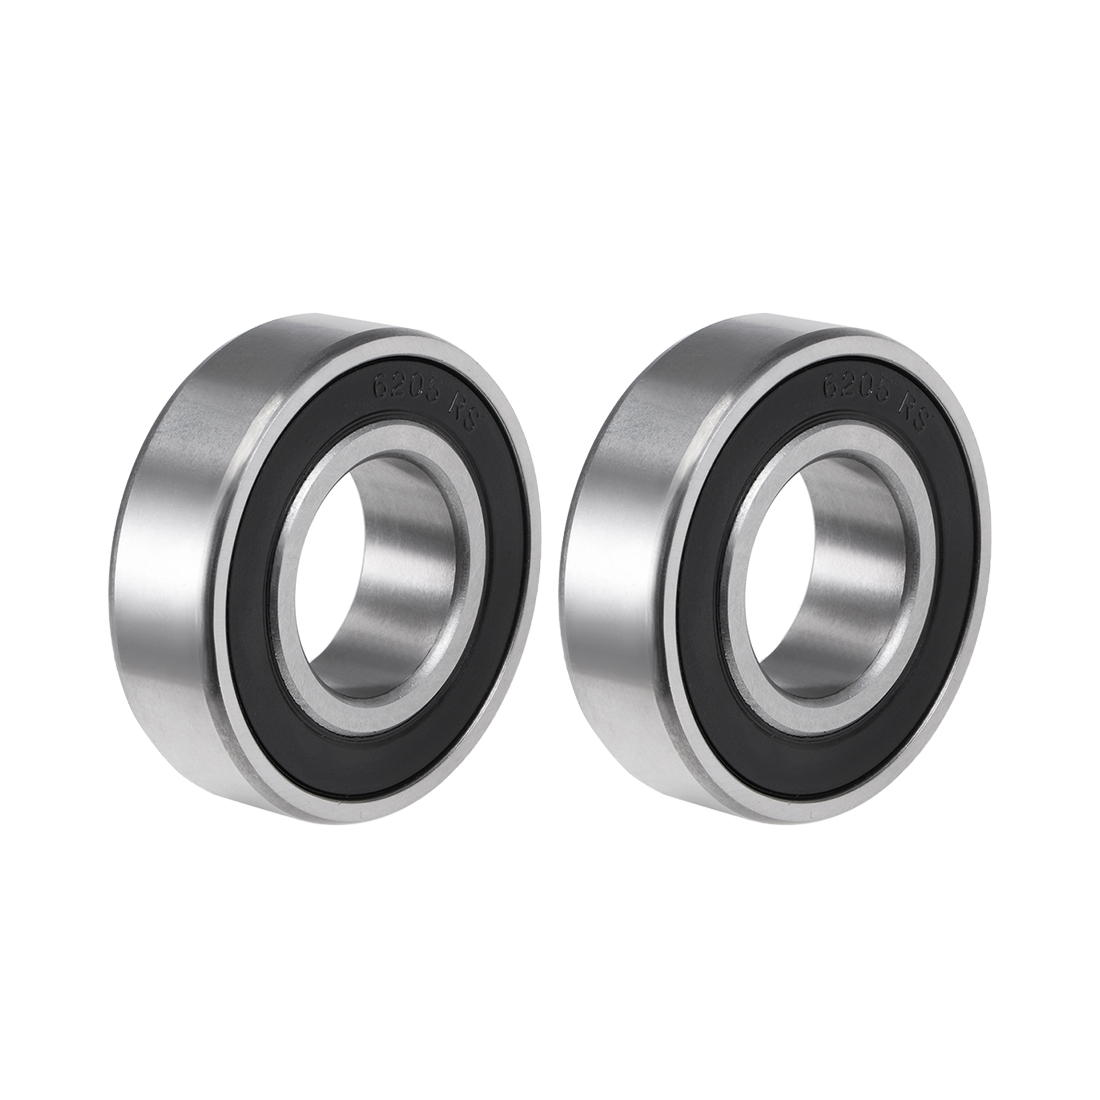 6205-2RS Ball Bearing 25x52x15mm Double Sealed ABEC-3 Bearings 2pcs